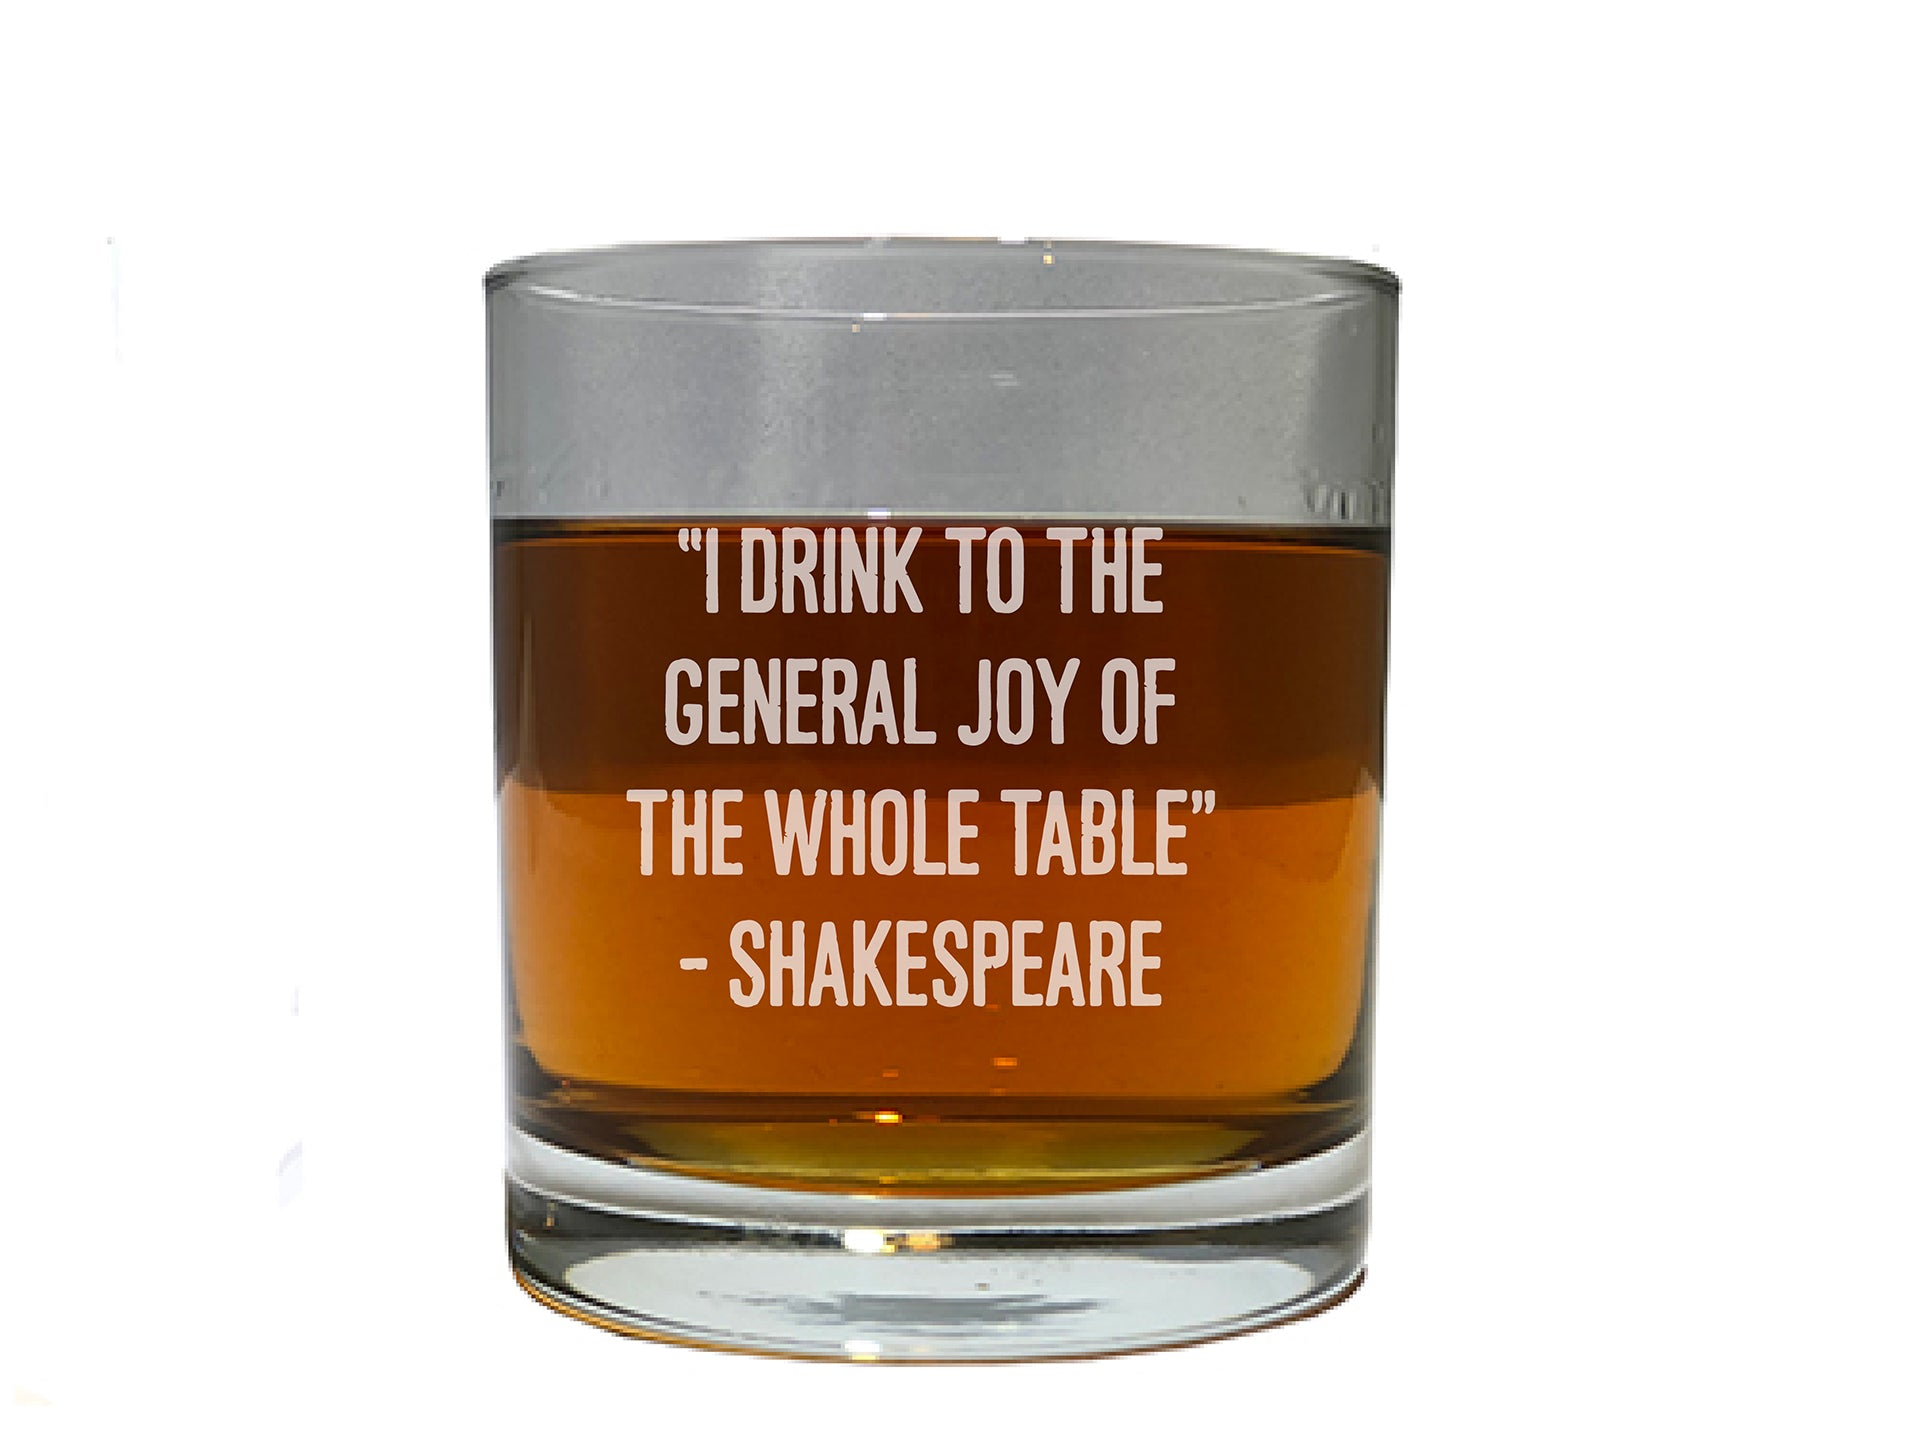 Whiskey Glass With Shakespeare quote from Macbeth